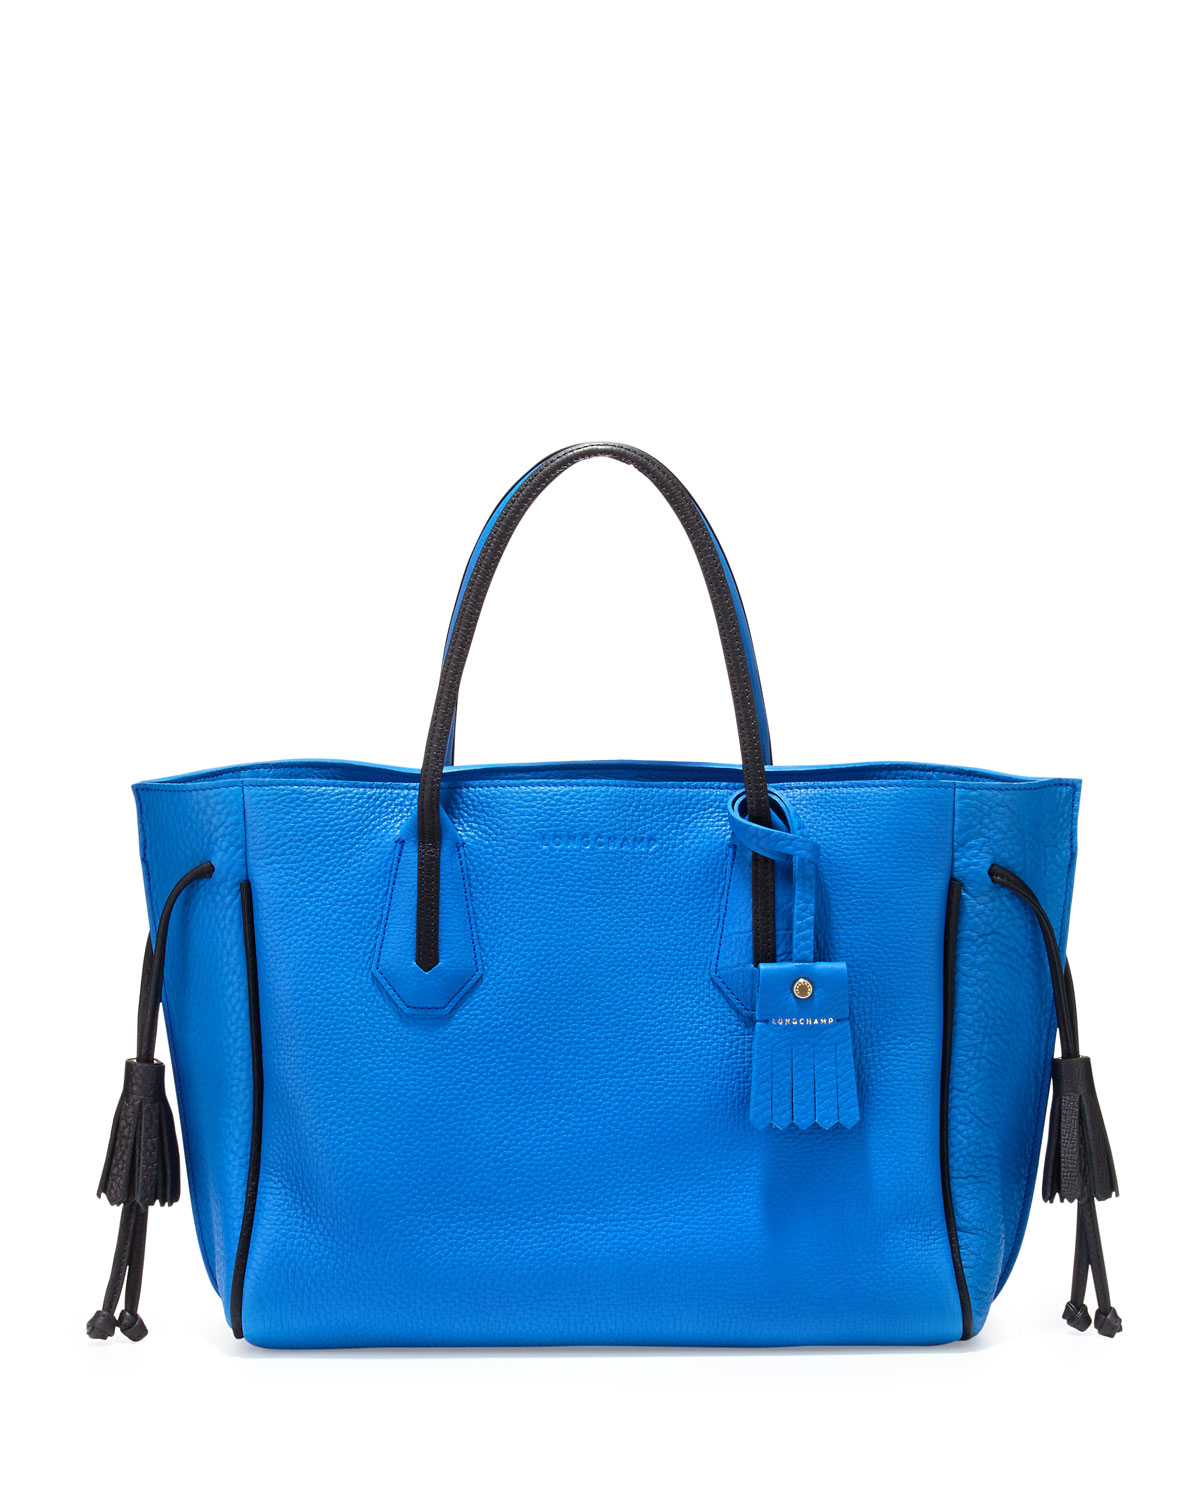 Lyst Longchamp Penelope Fantasie Tote Bag In Blue